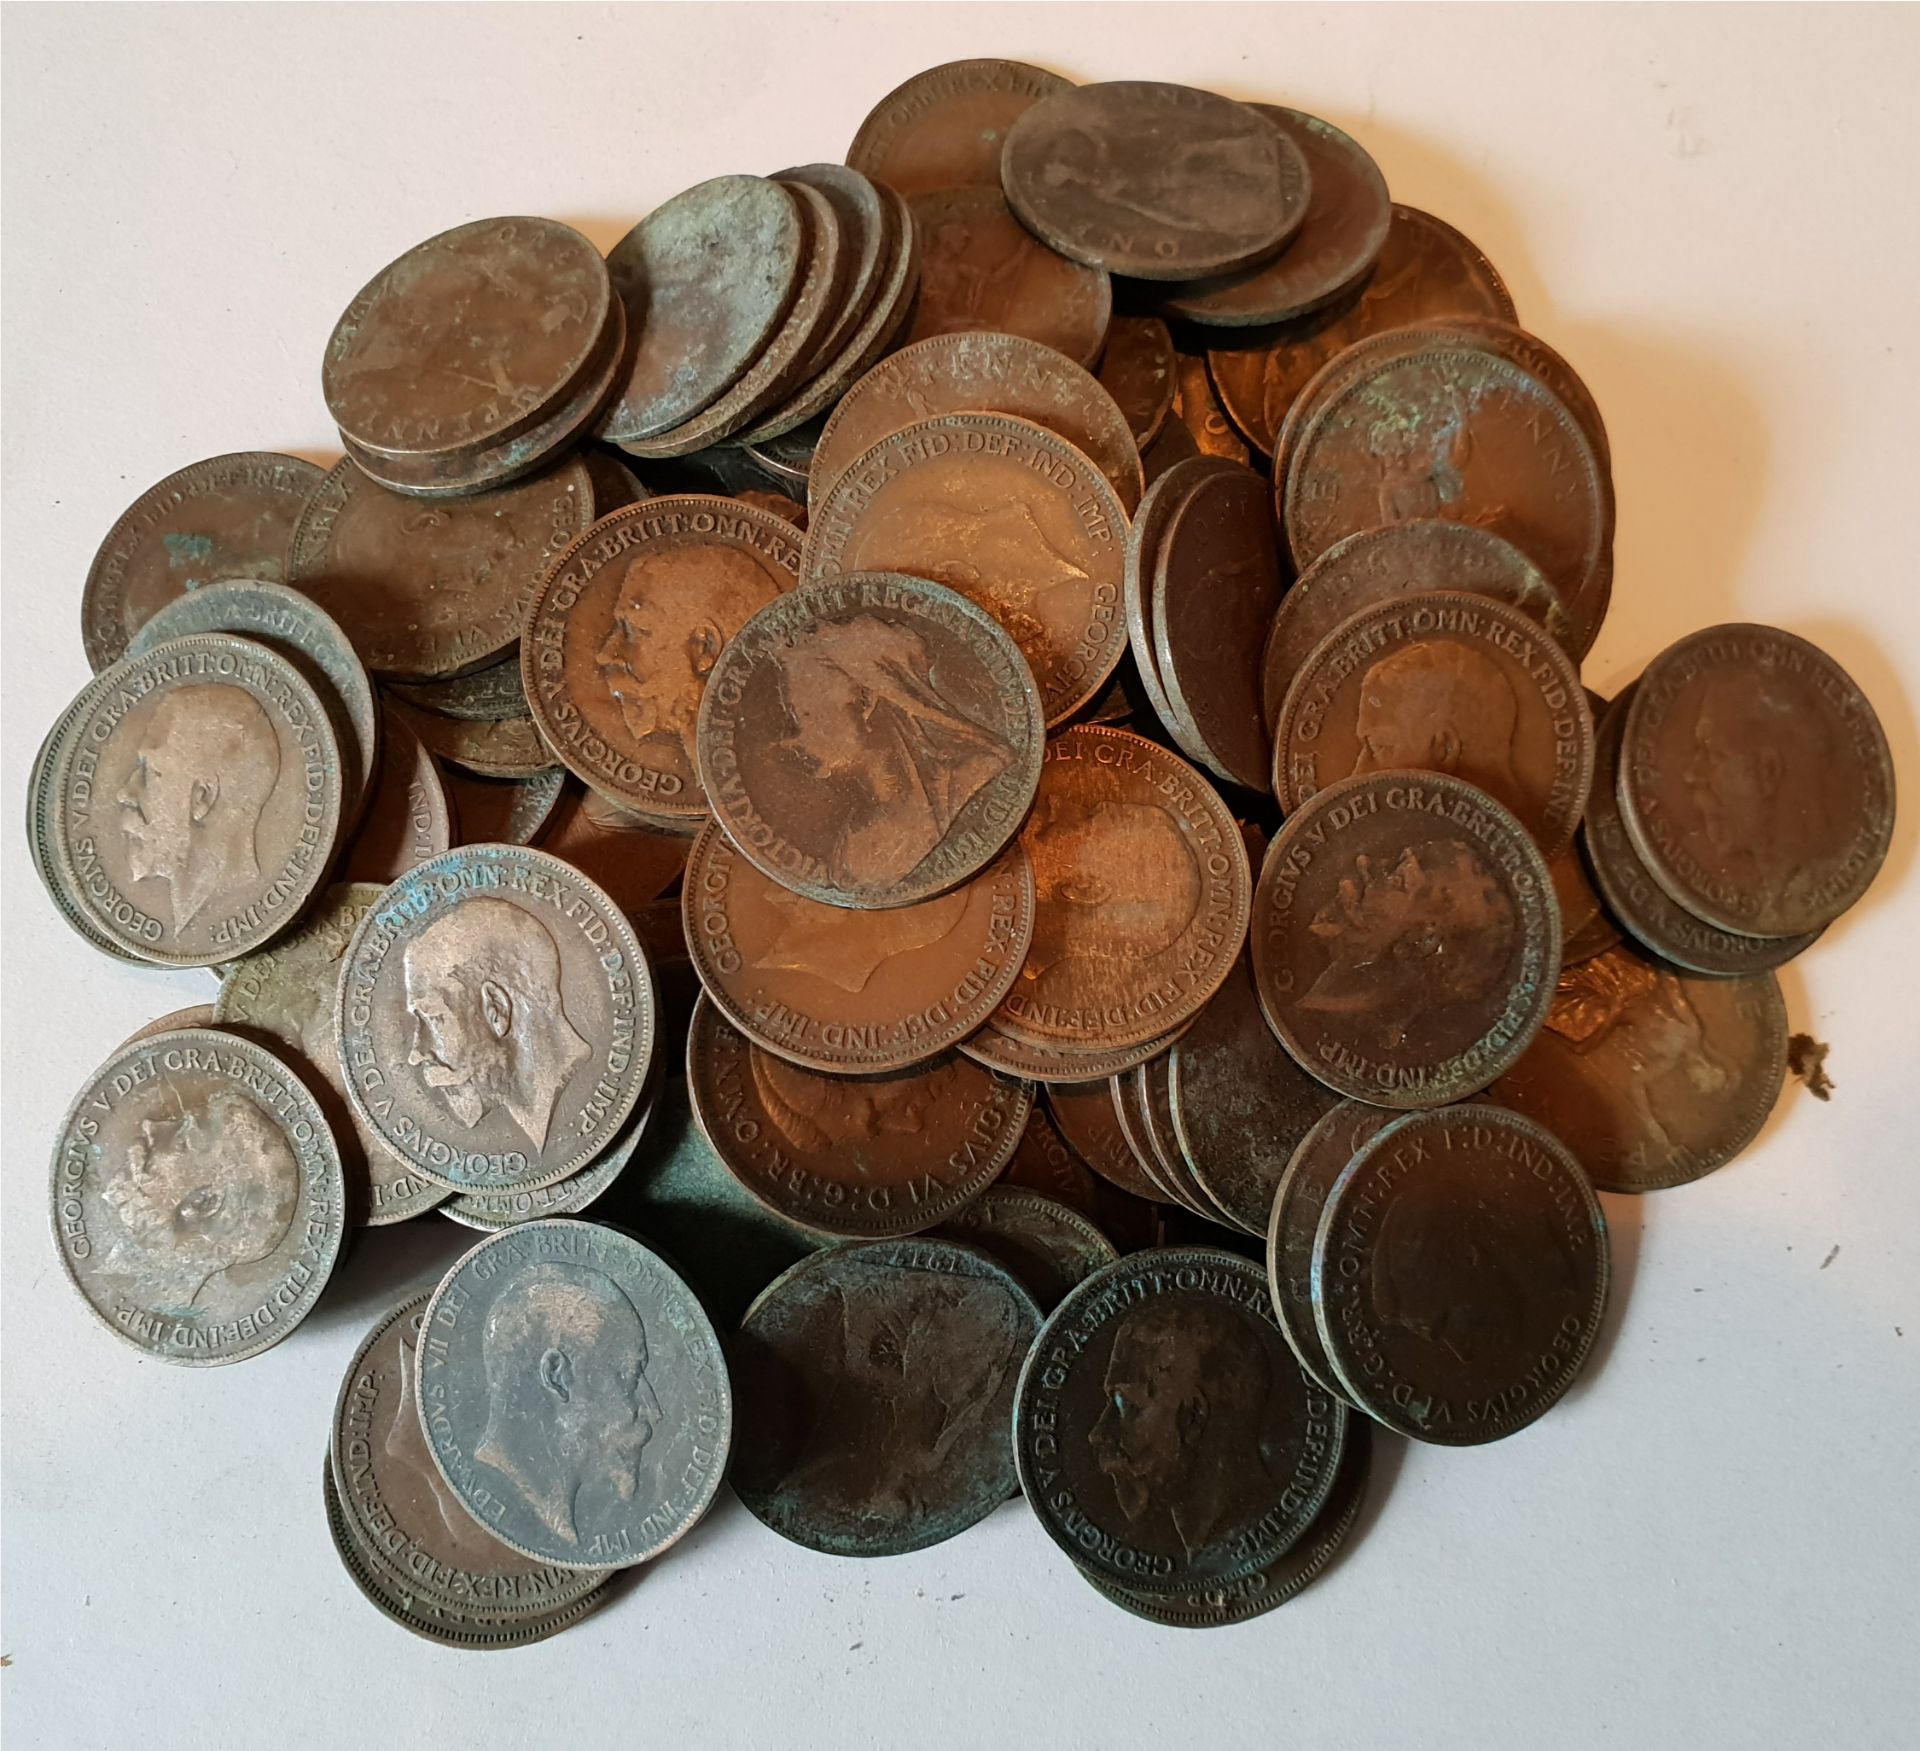 Lot 59 - Collectable Coins 800g Bag of British Pennies Victoria Edward VII George V George VI NO RESERVE